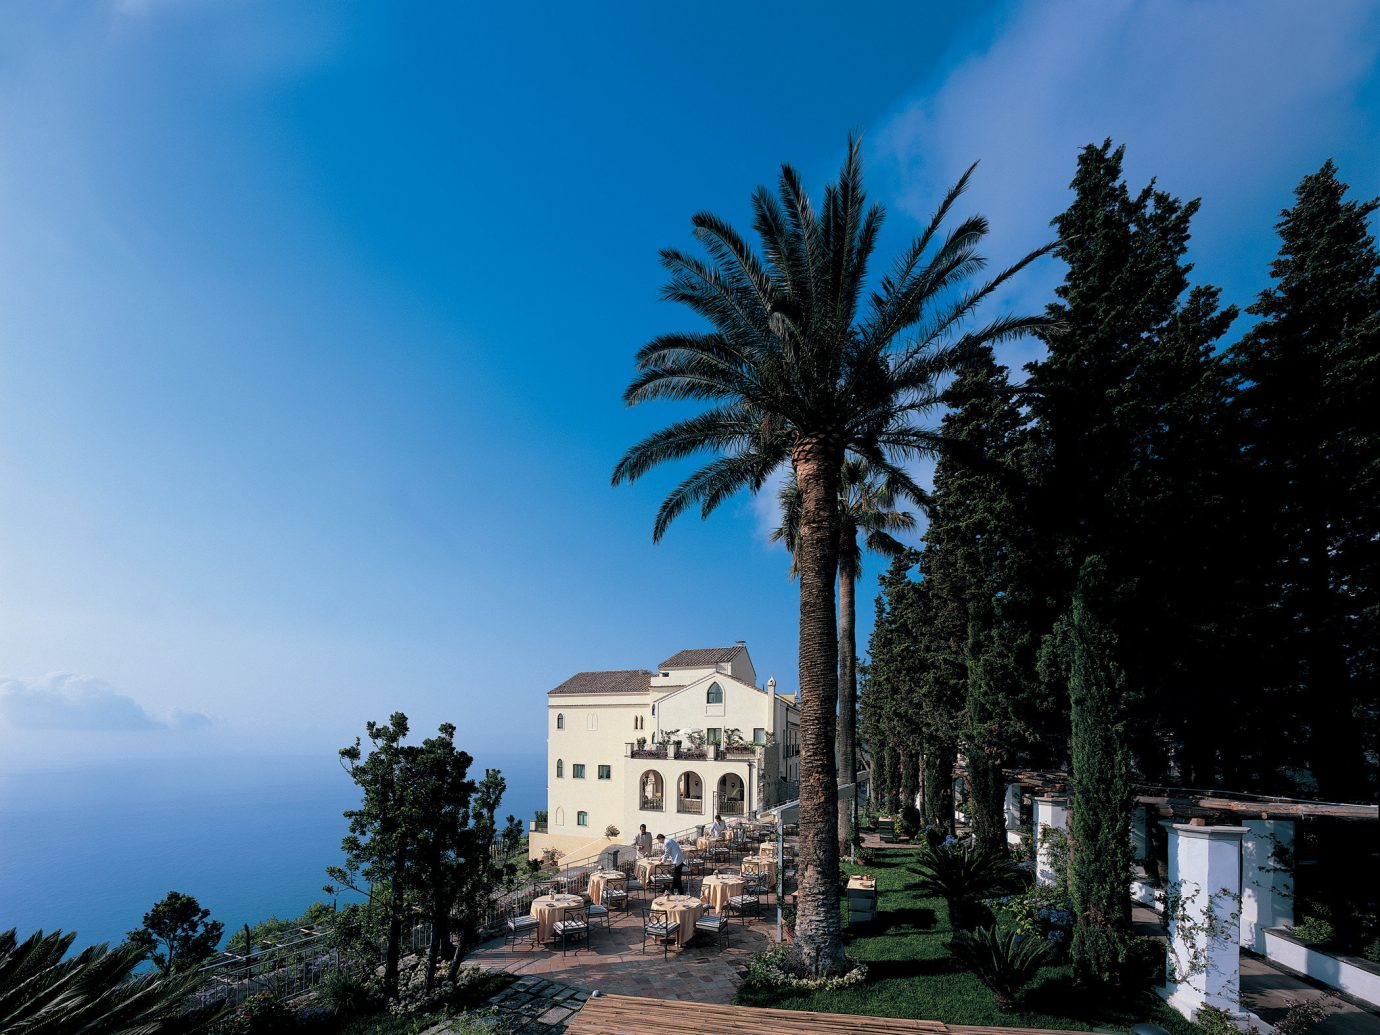 Outdoor dining at Belmond Hotel Caruso, Ravello